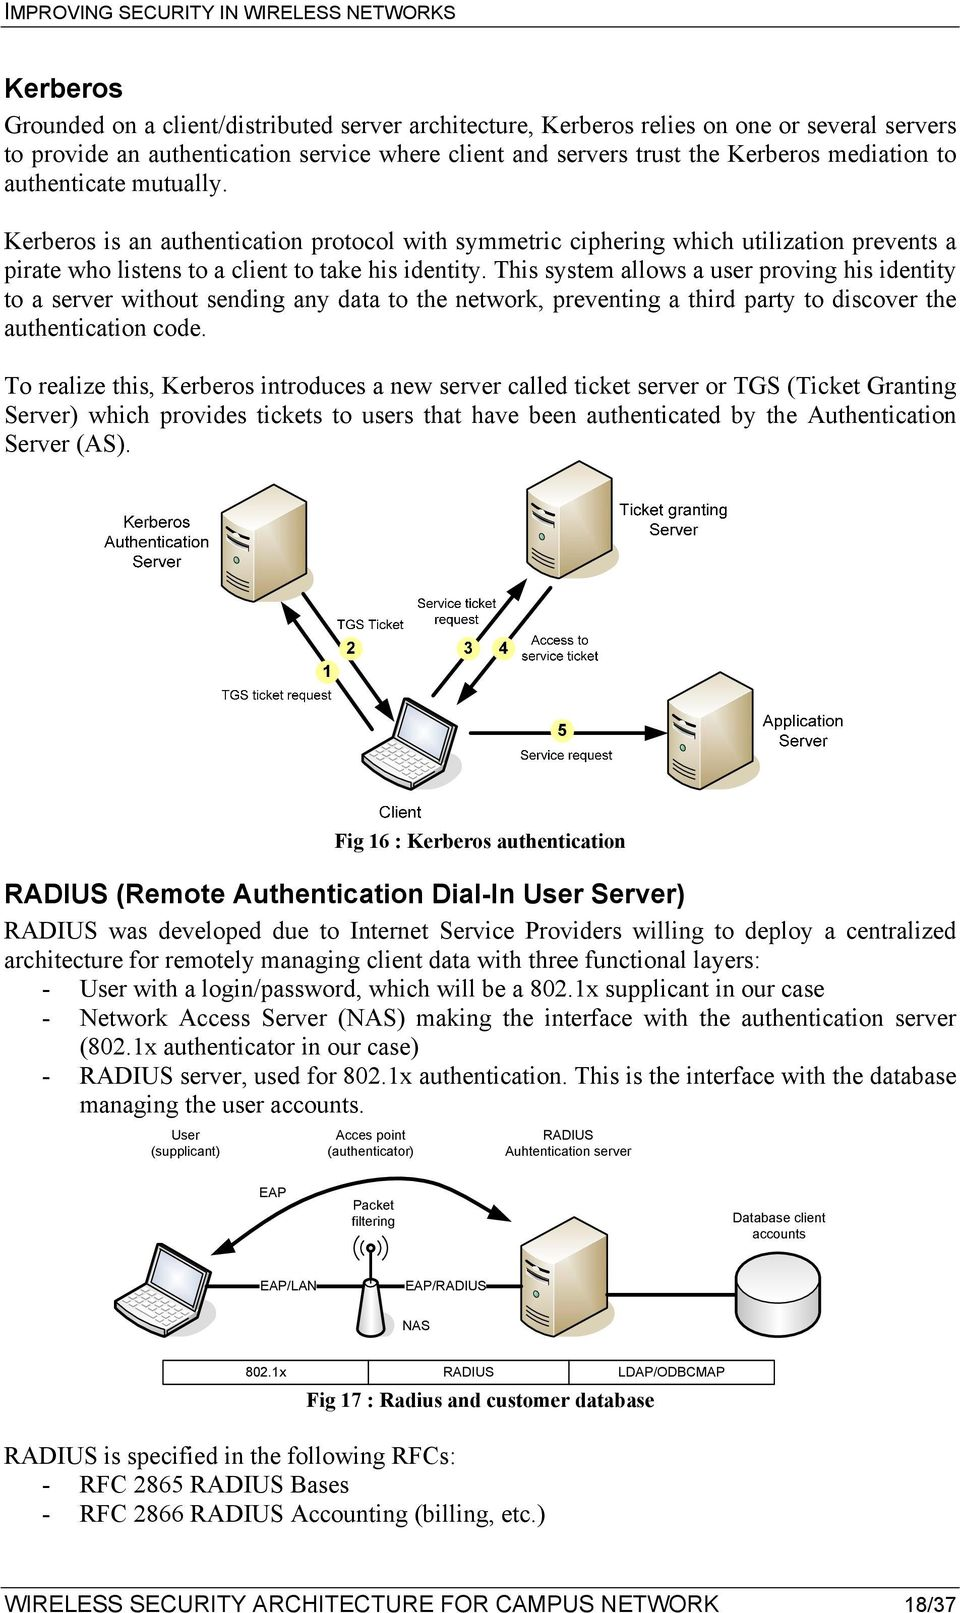 Kerberos is an authentication protocol with symmetric ciphering which utilization prevents a pirate who listens to a client to take his identity.